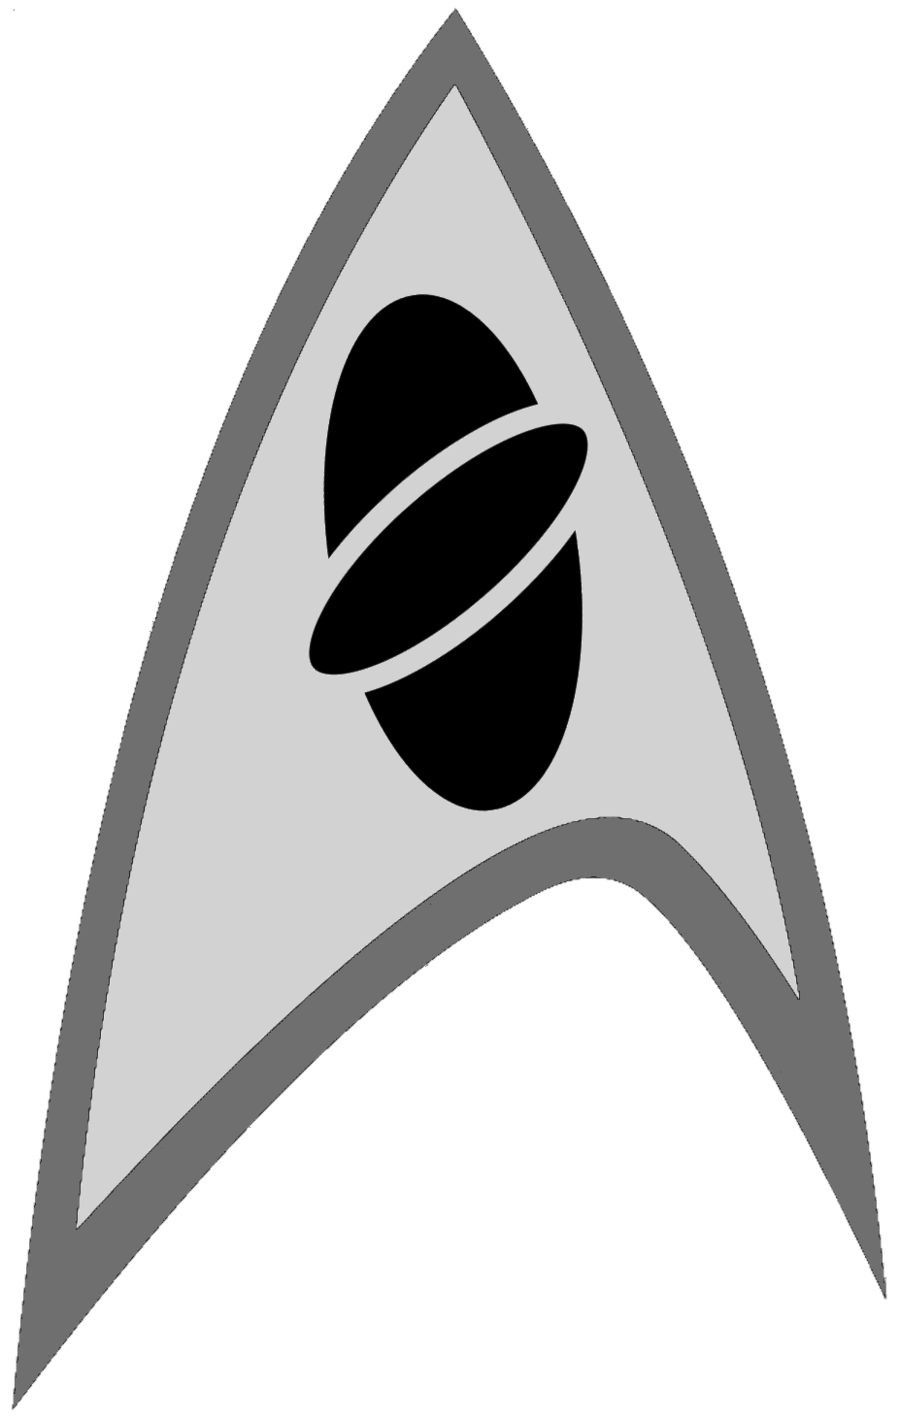 new star trek science png logo #3570